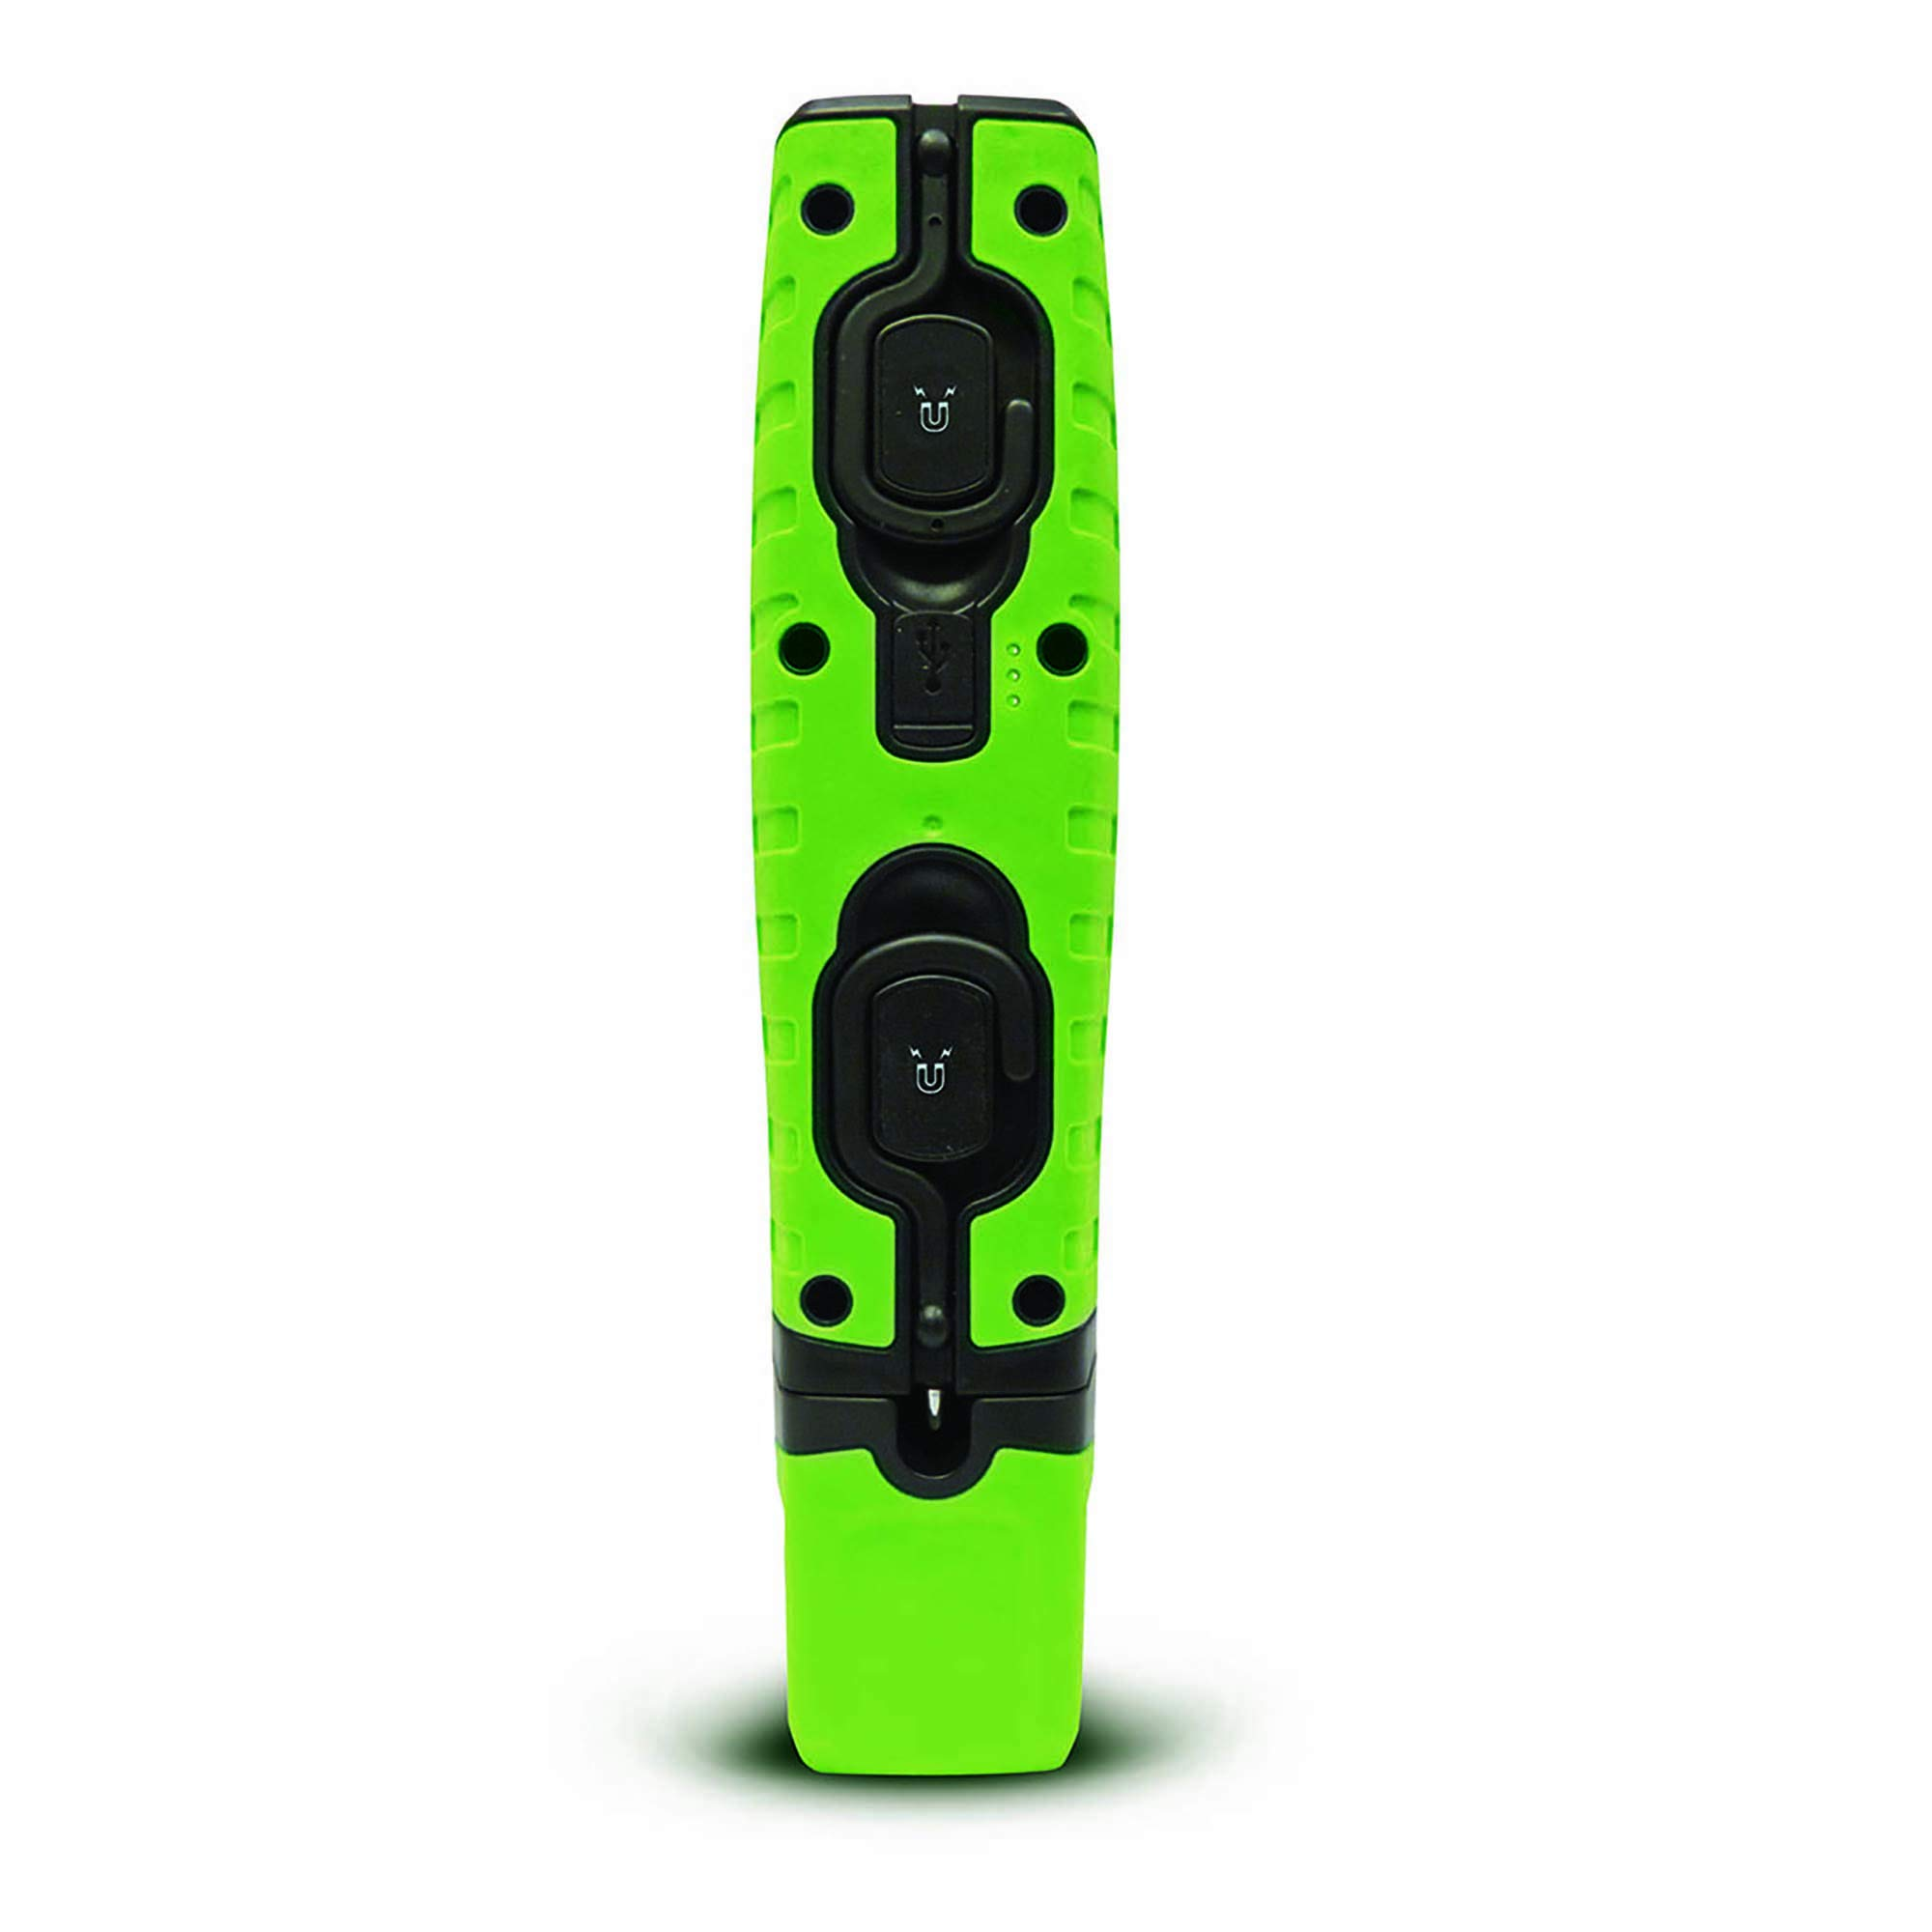 Schumacher SL137GU 360 Degree Plus Cordless Work Light, Green by Schumacher (Image #2)